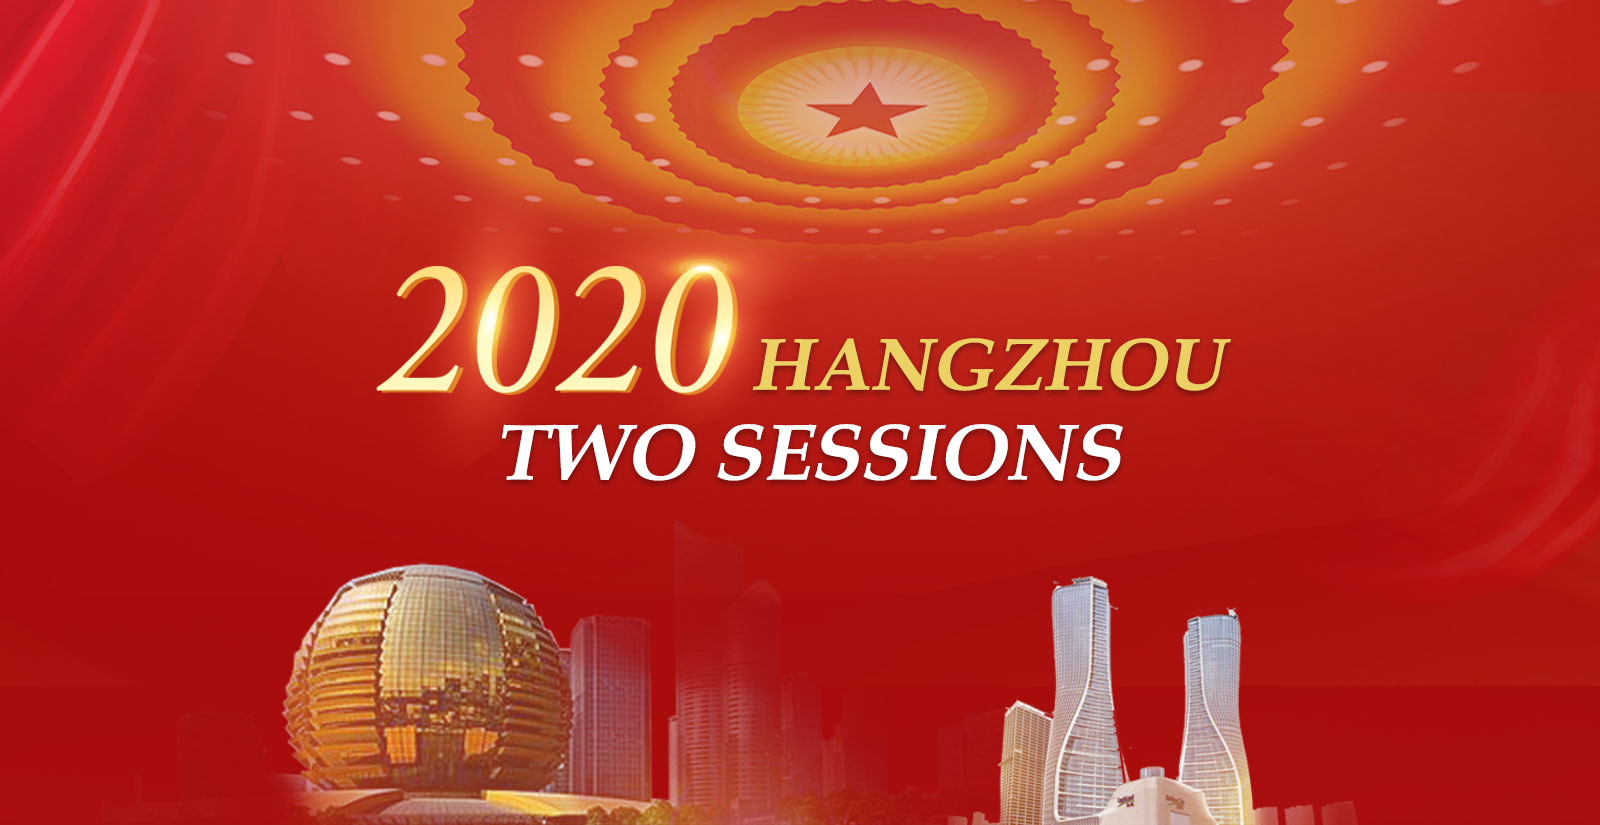 2020 Hangzhou Two Sessions